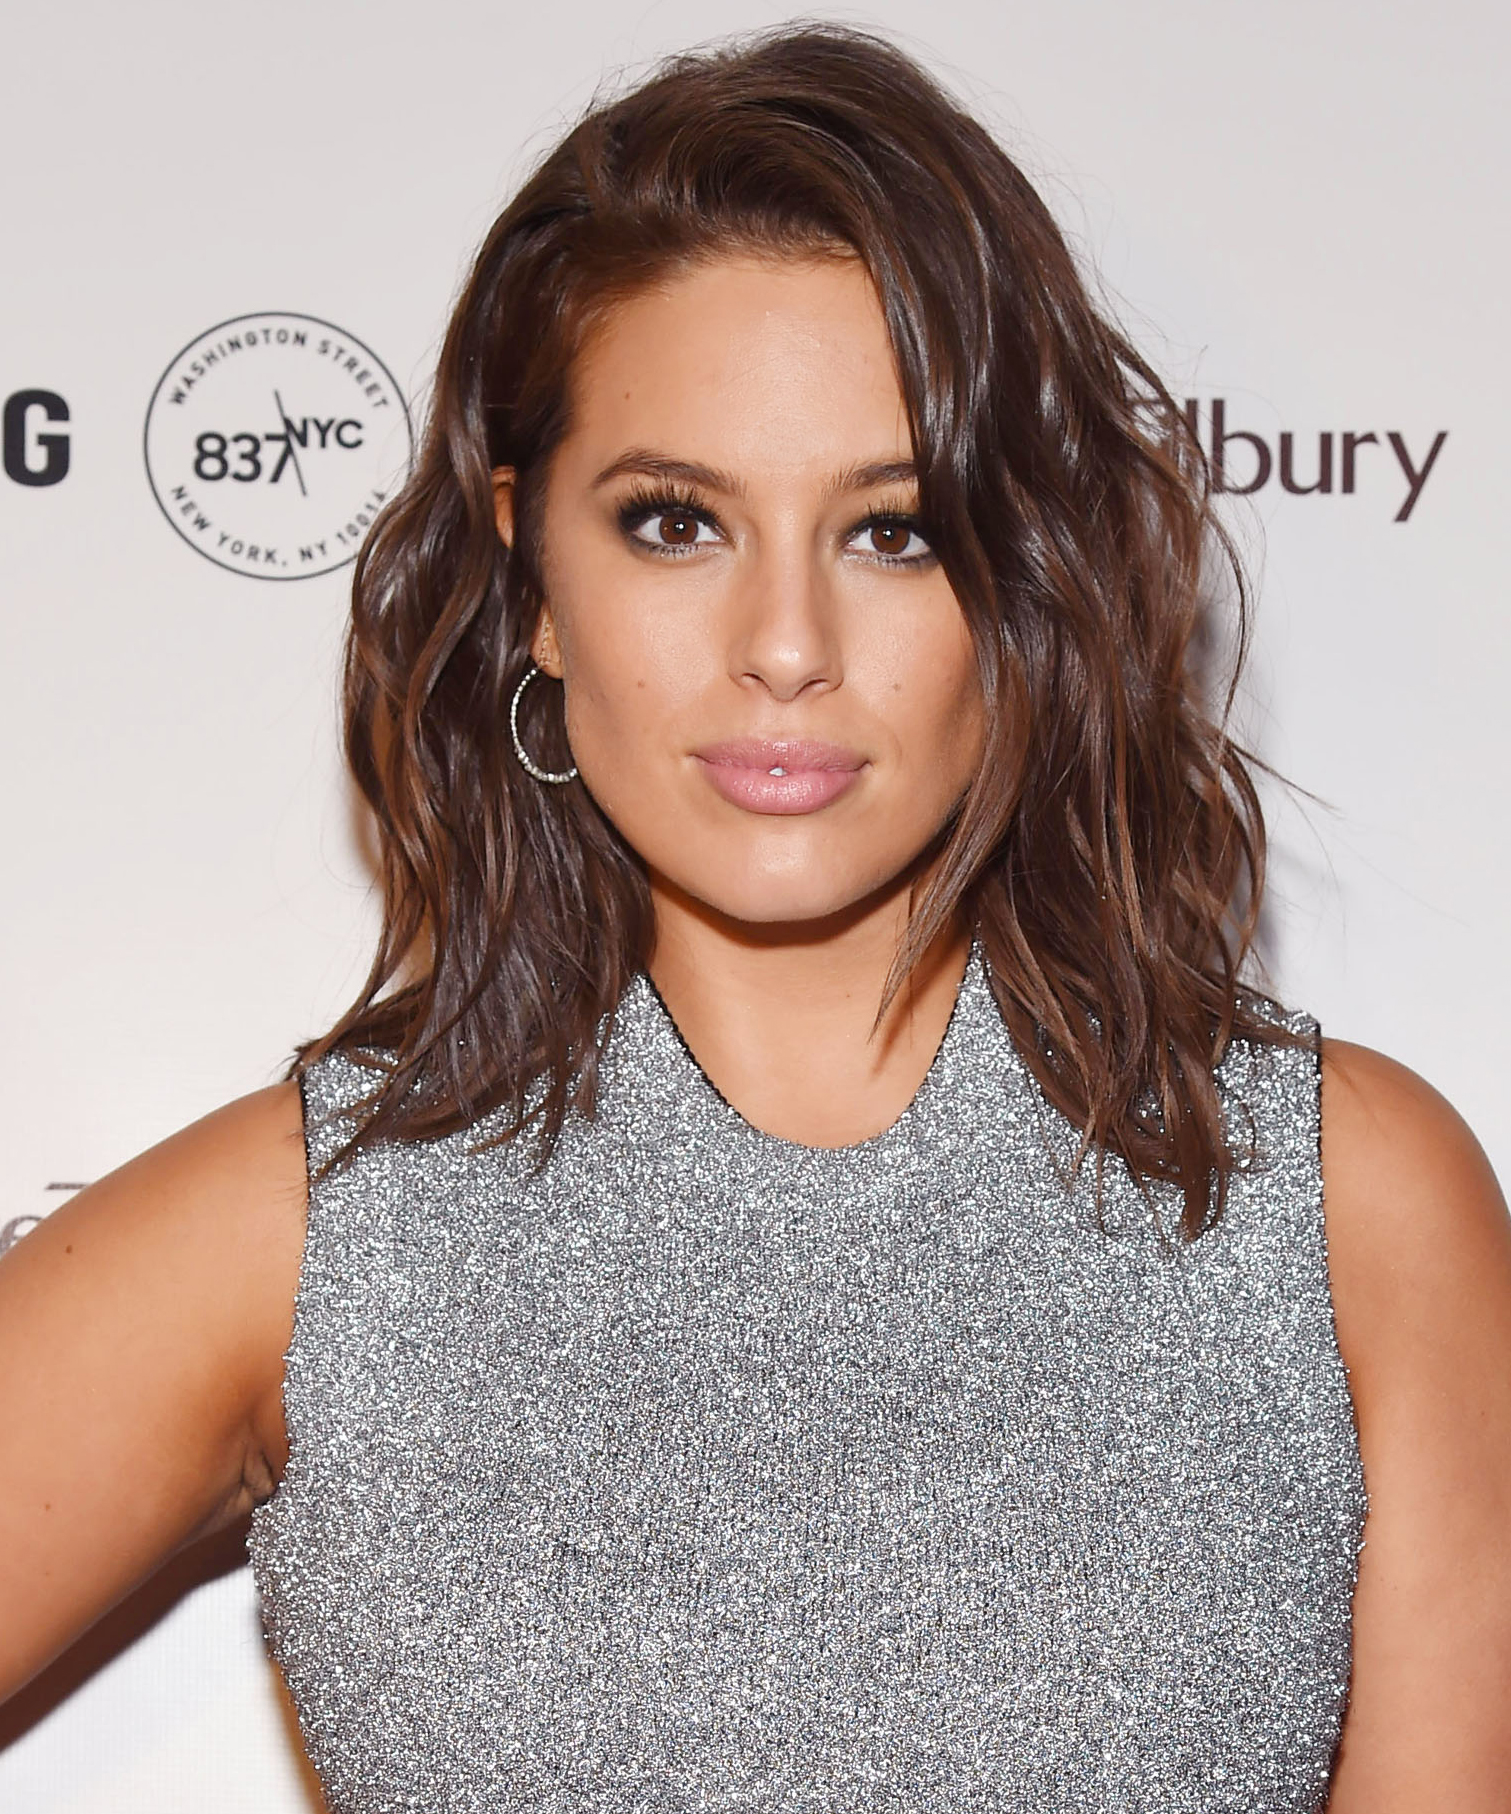 Www Ashly: 4 Of Ashley Graham's Secrets To Shopping Online Like A Pro